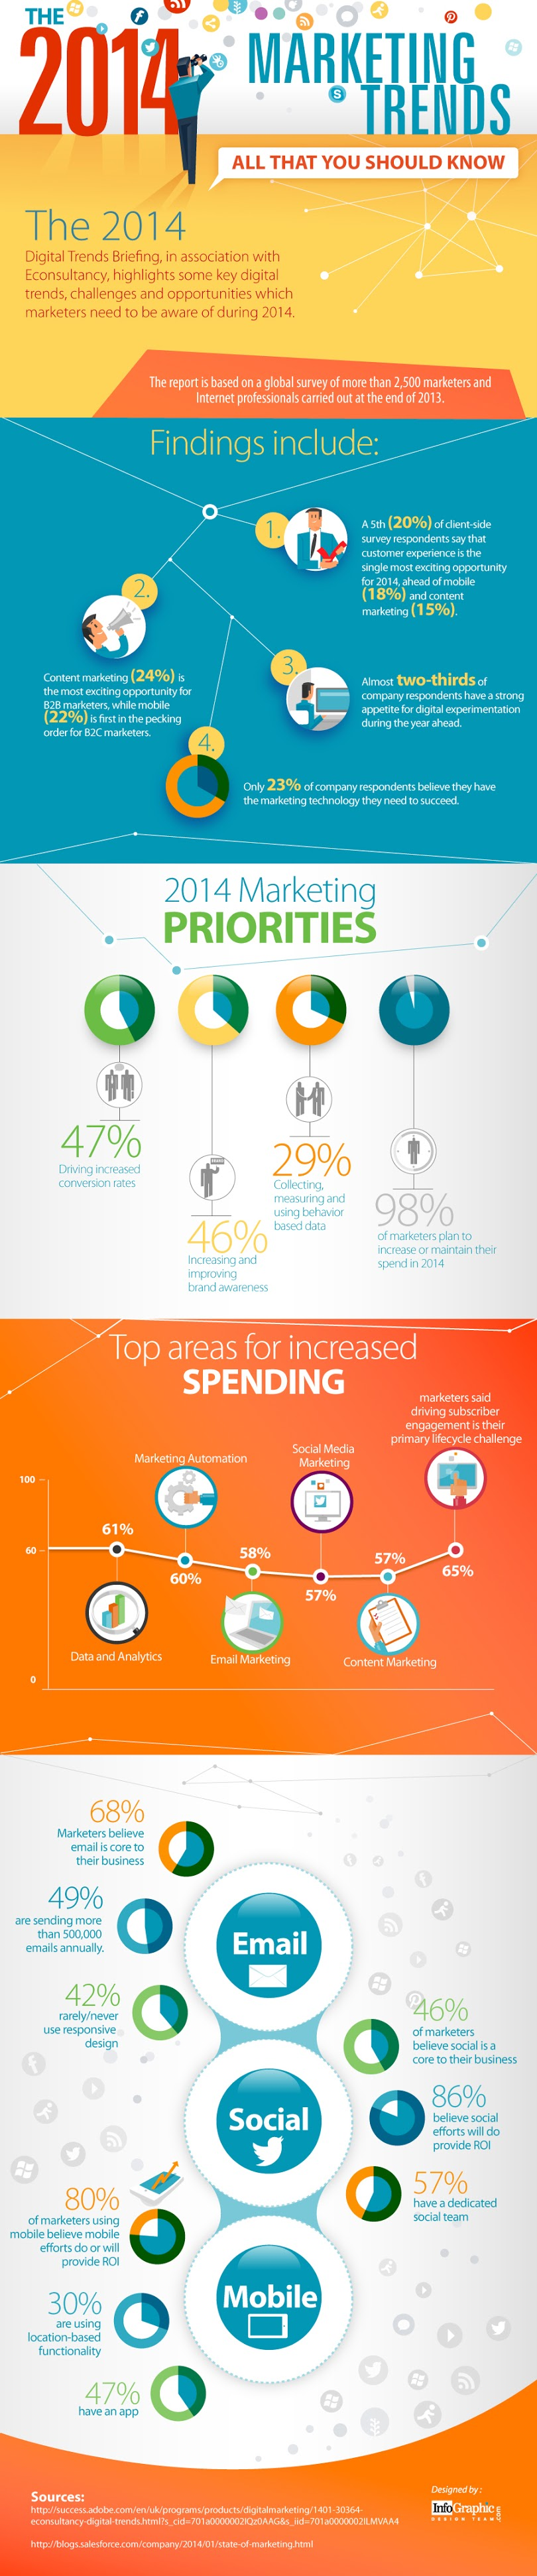 The 2014 Digital Marketing Trends - All That you Should Know - infographic